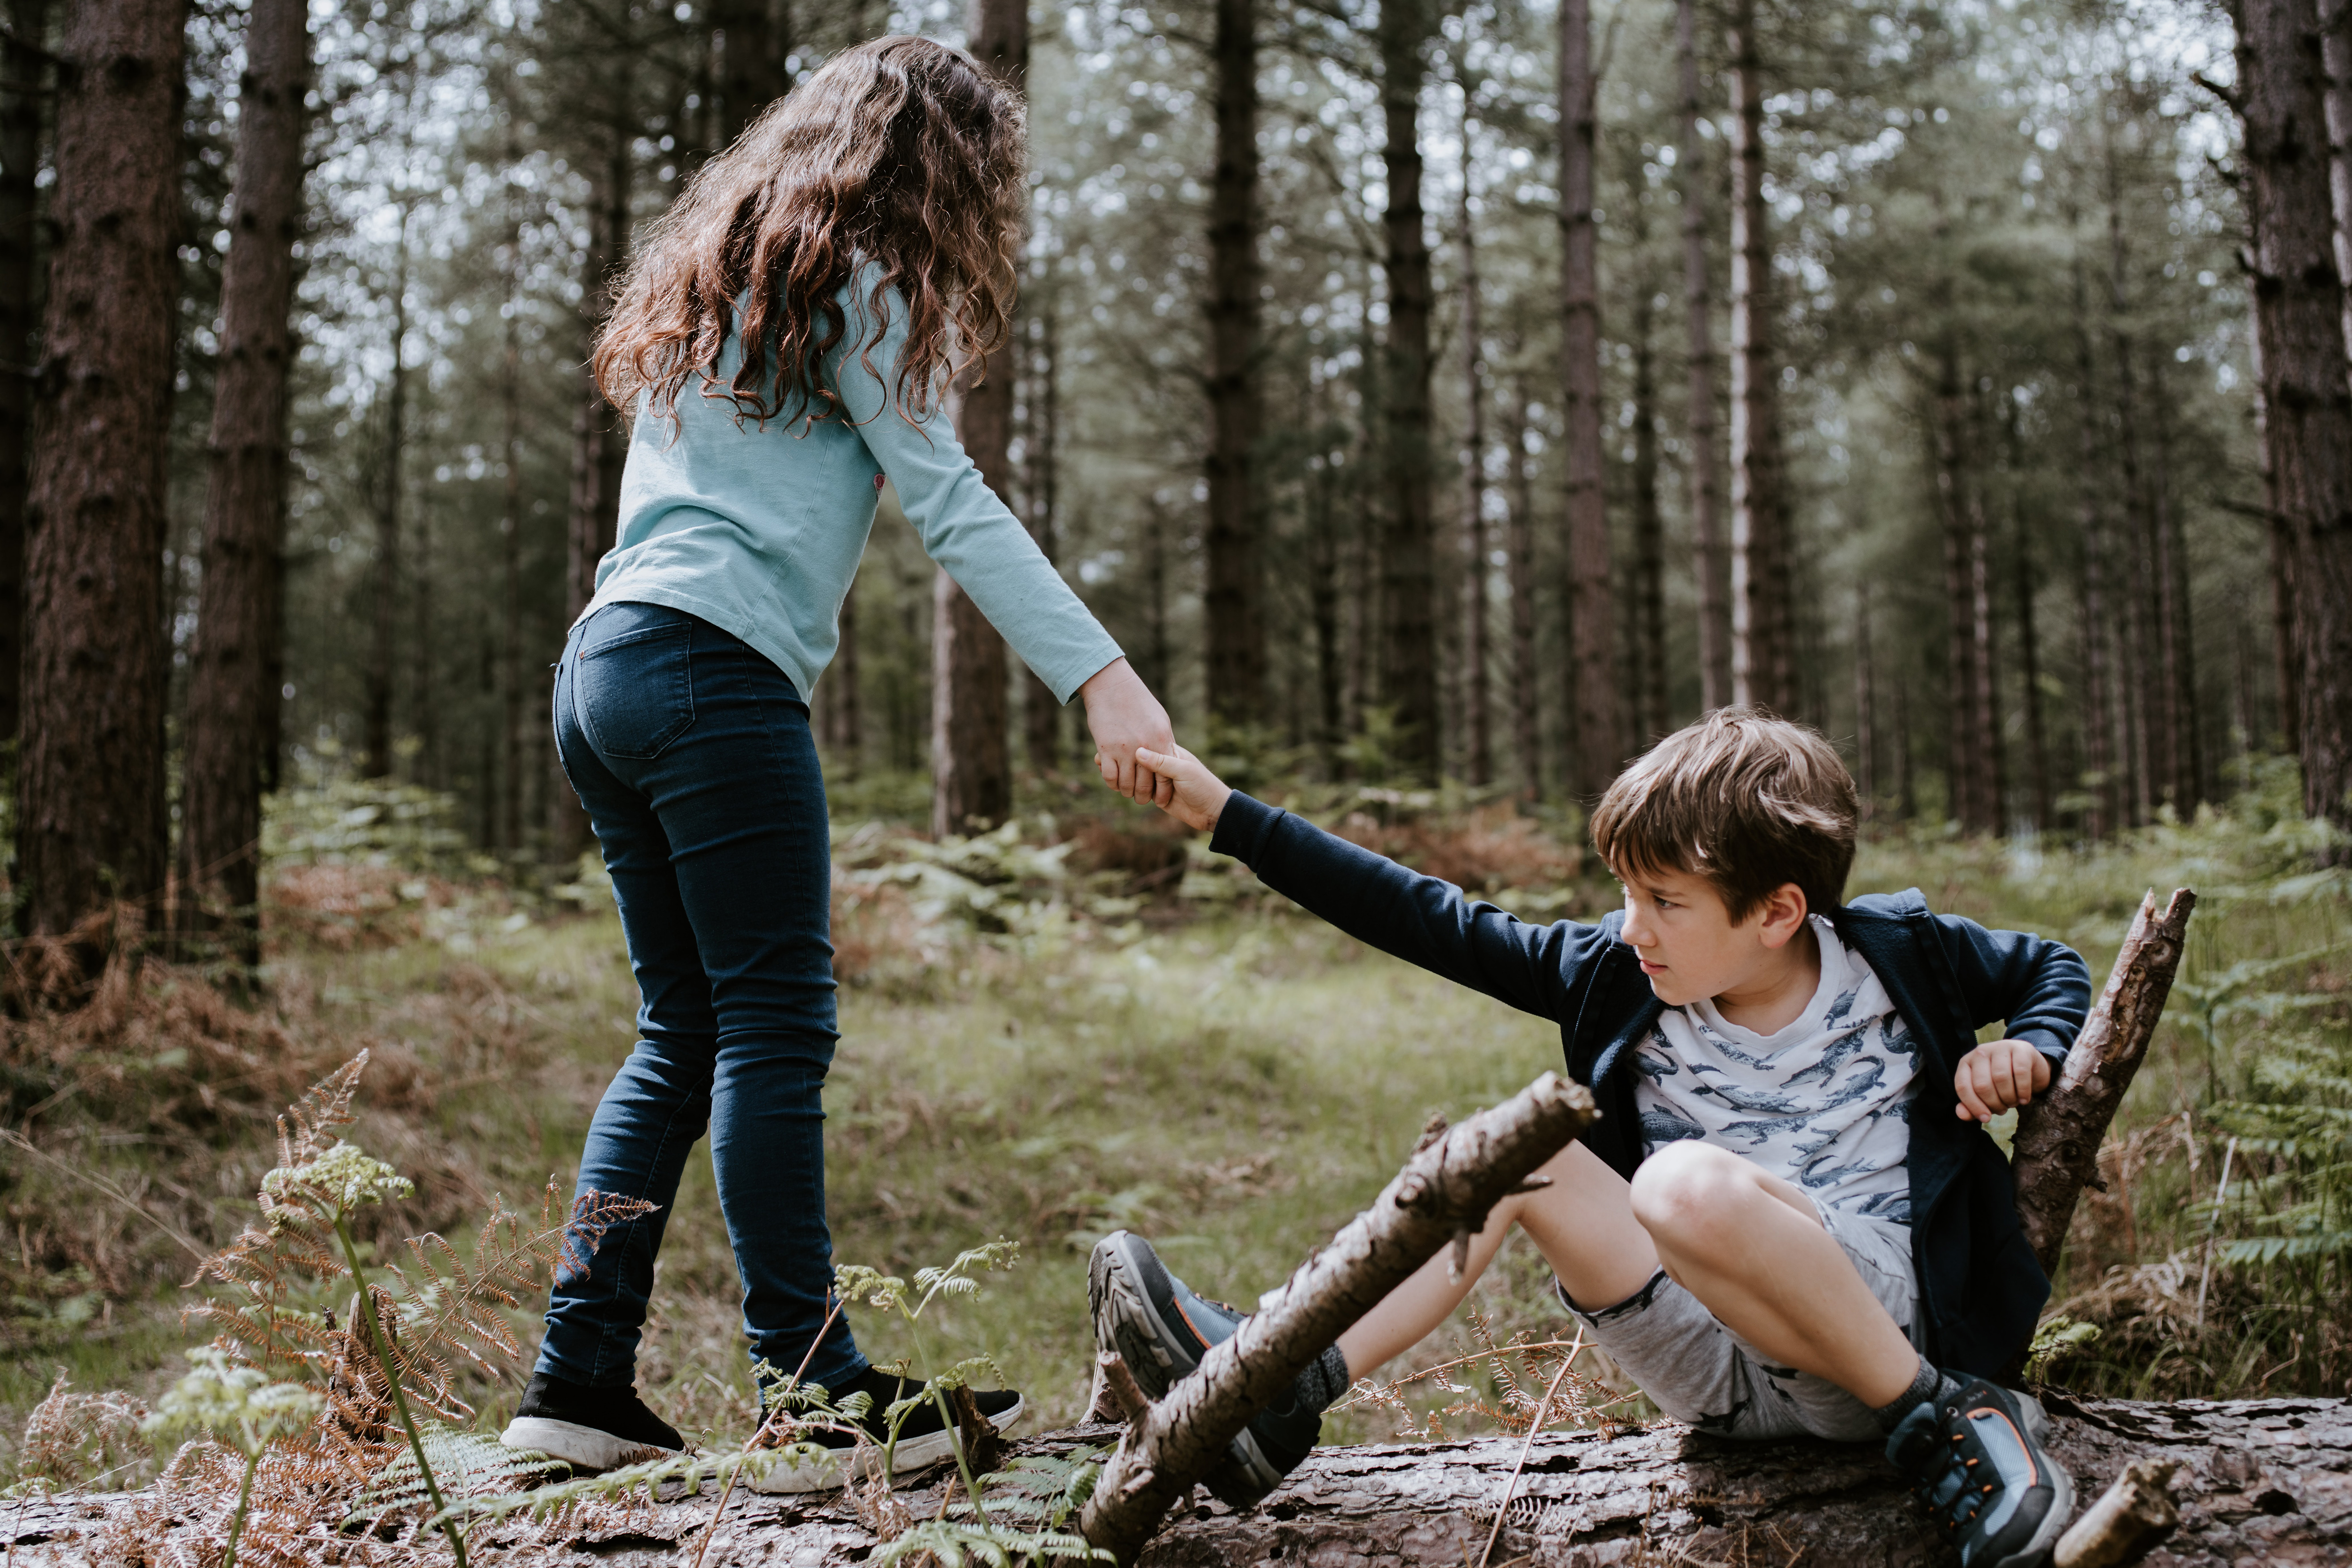 A young girl helping a young boy stand up. They are in some woods.